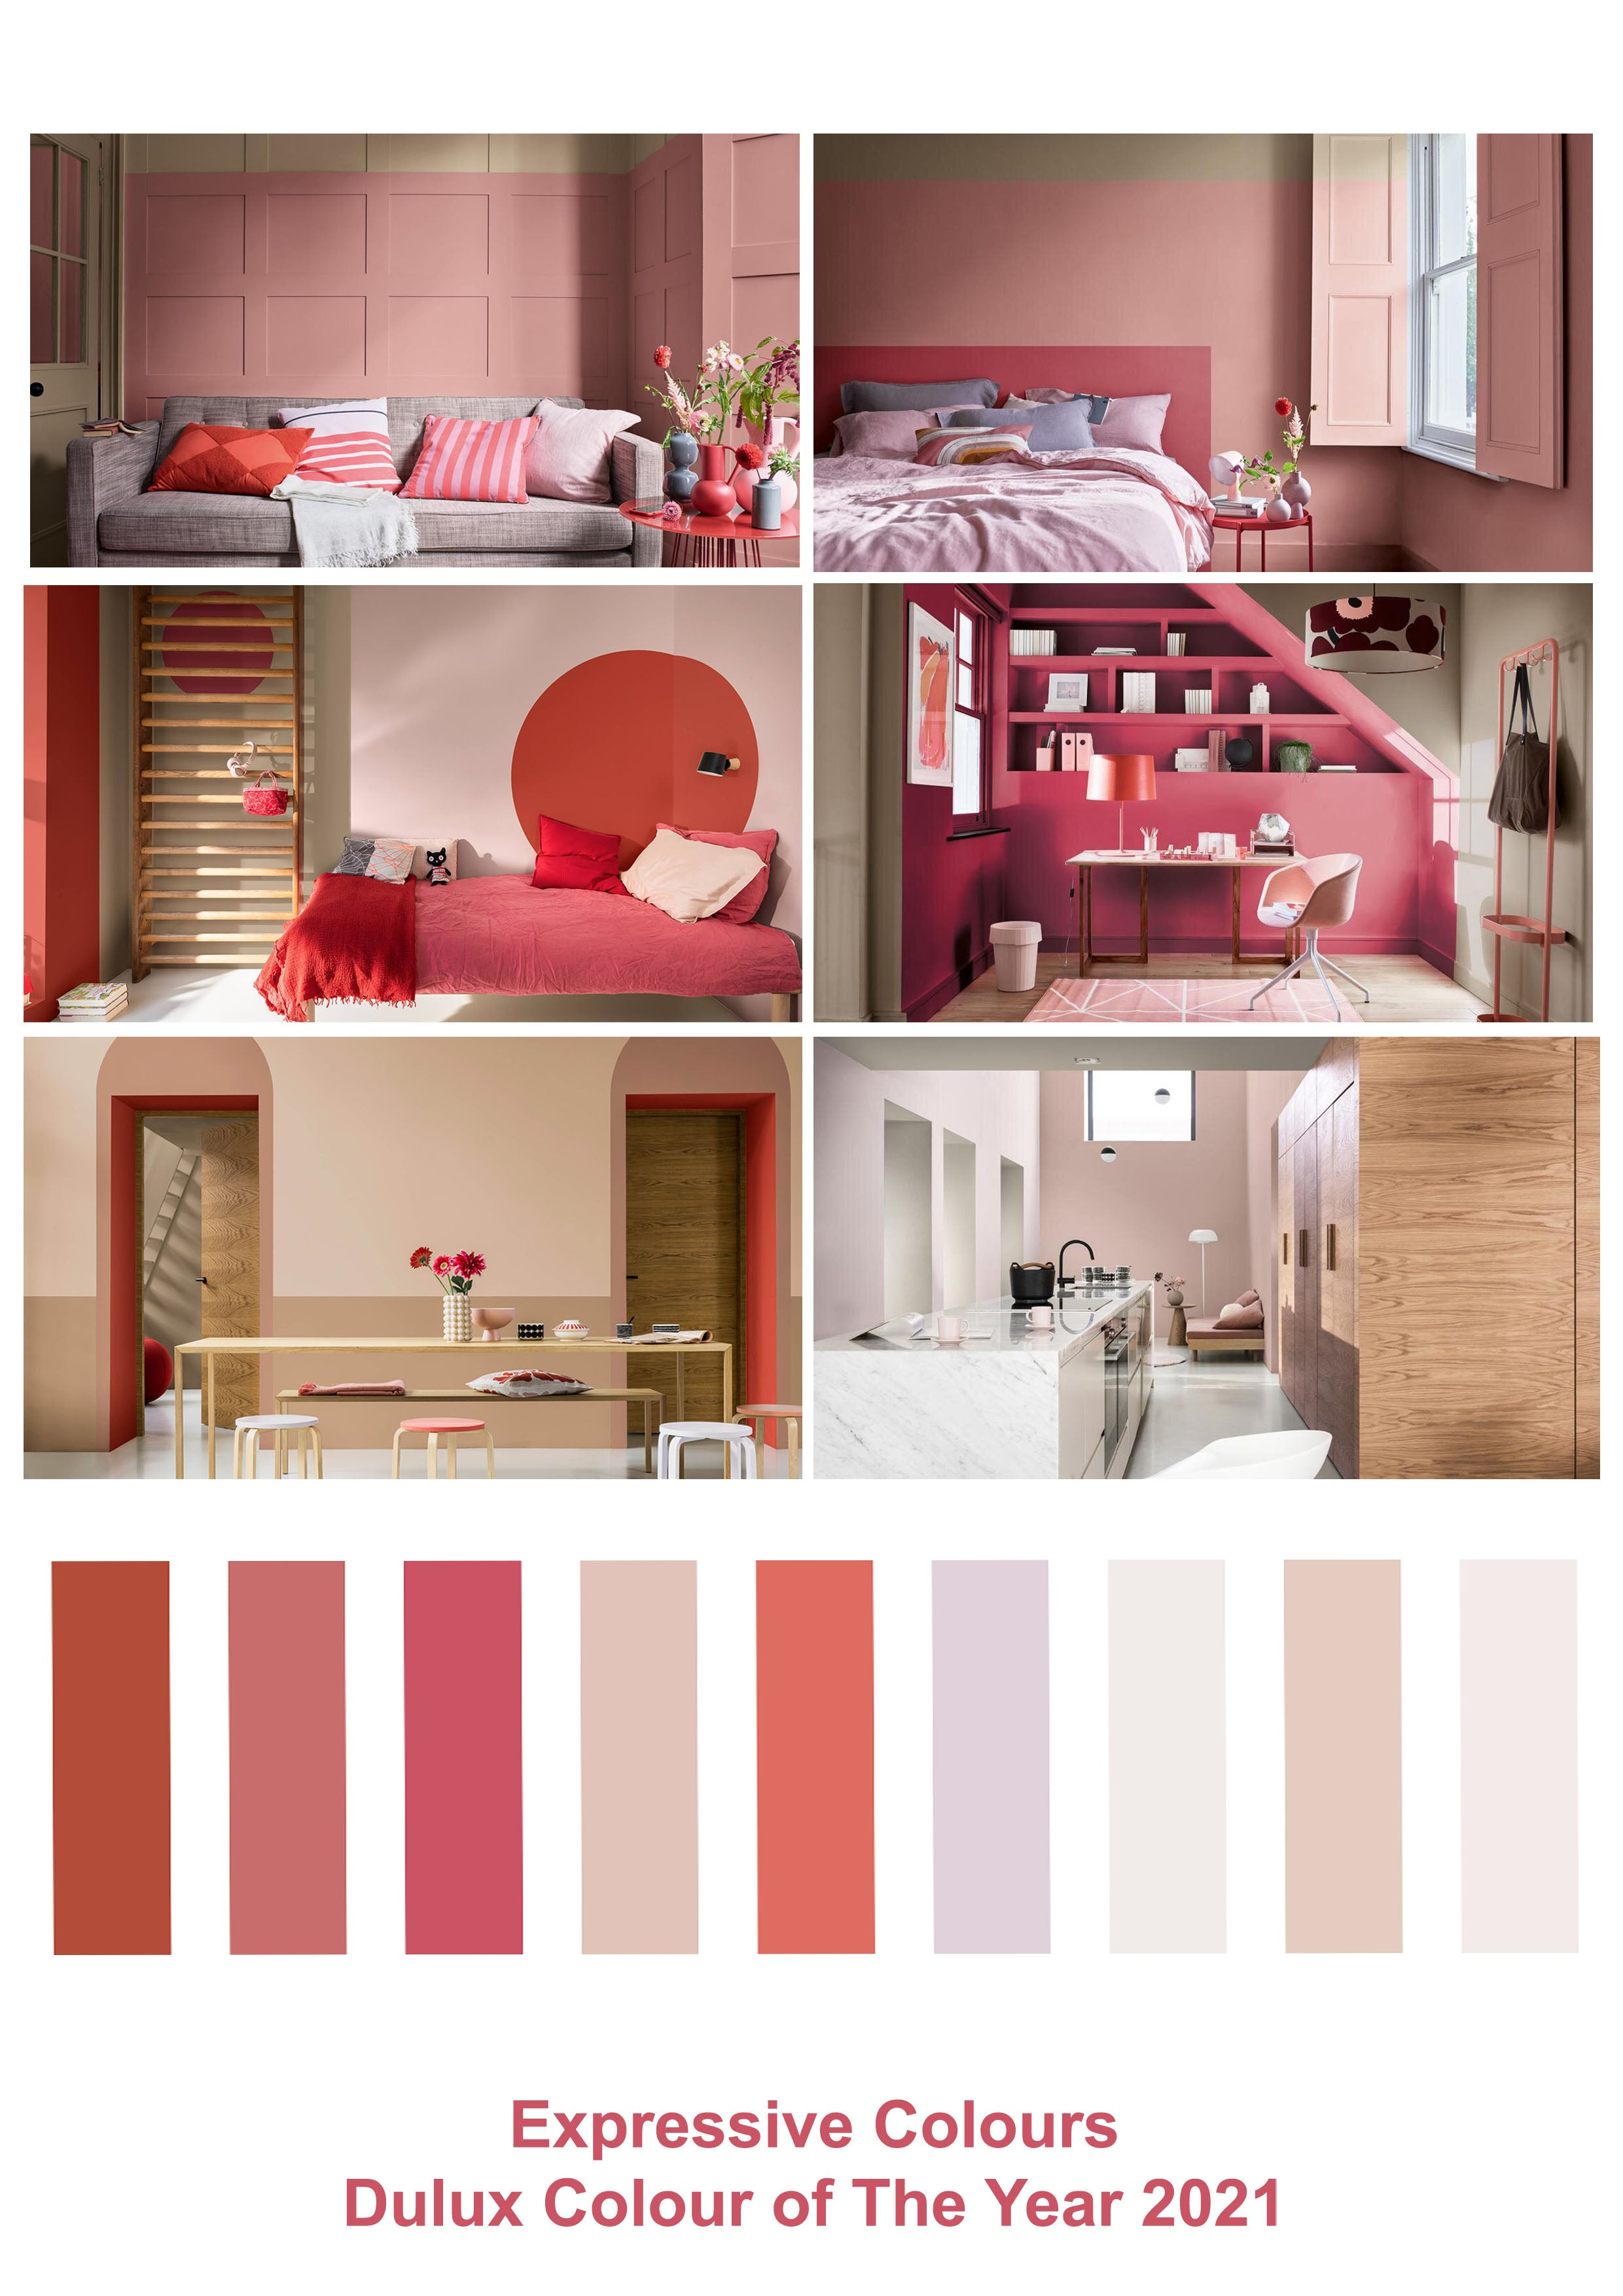 Expressive Colours, Dulux Colour of the Year 2021